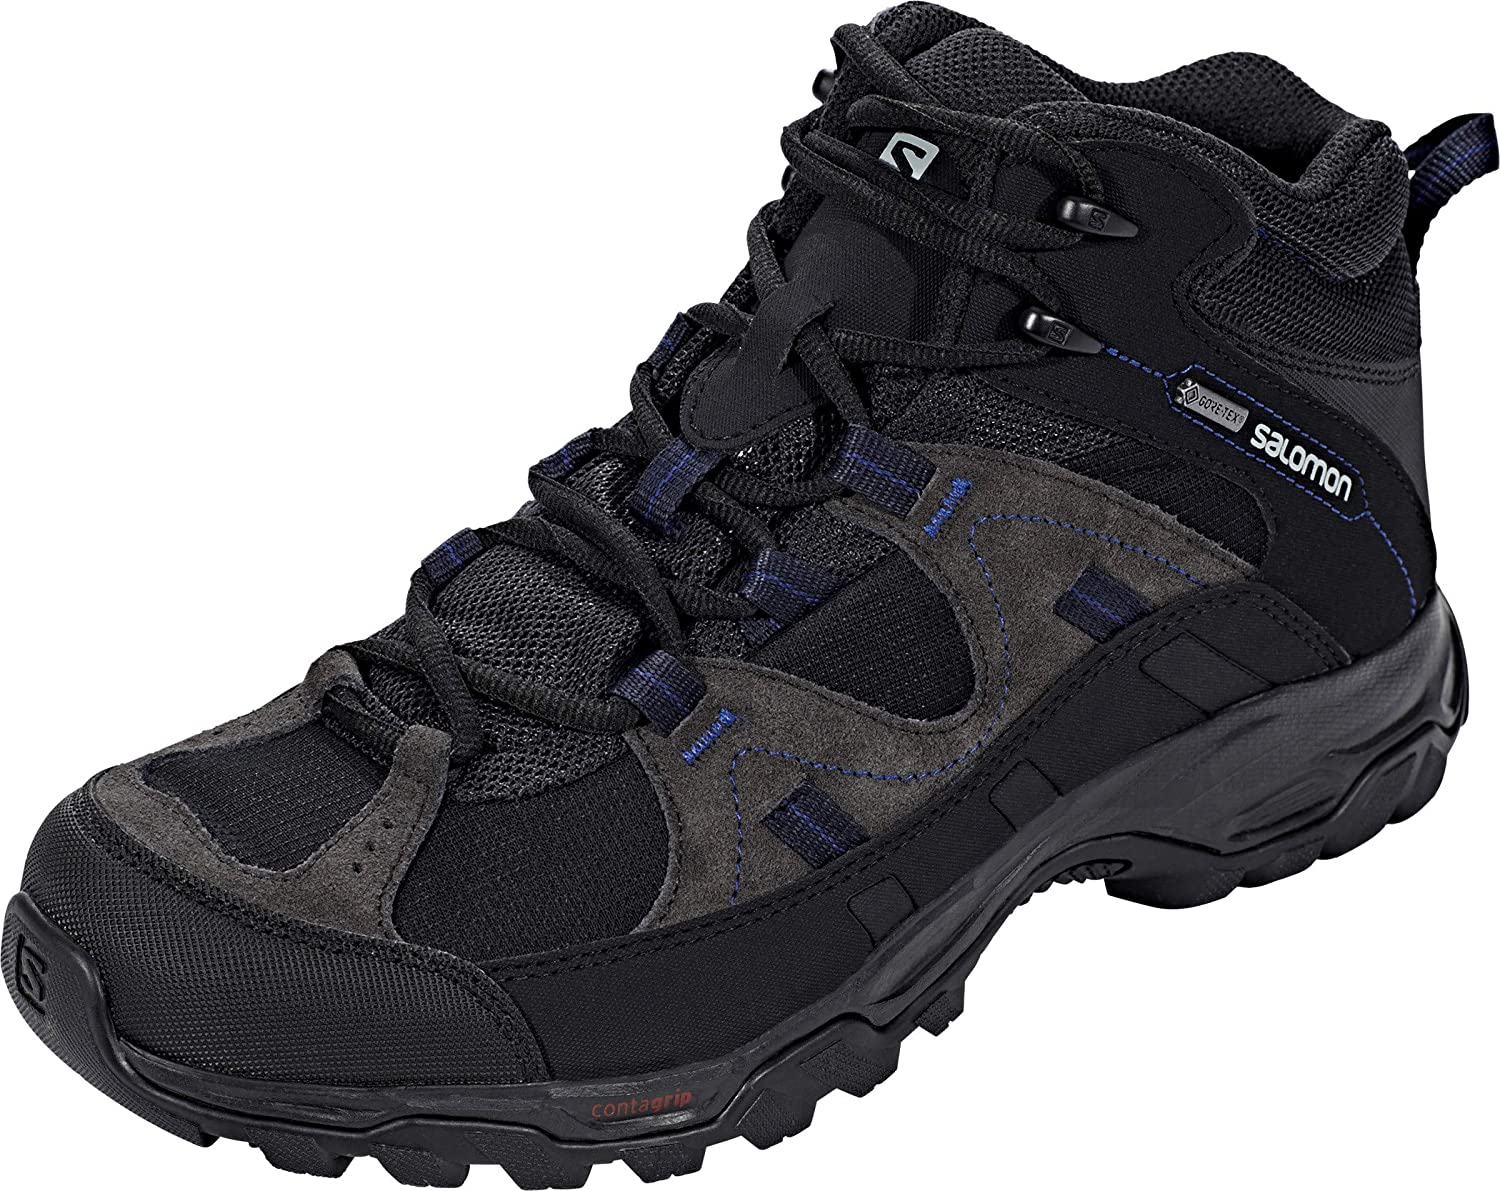 SALOMON Meadow GTX shoes Men Black shoes Size 44 2 3 2017